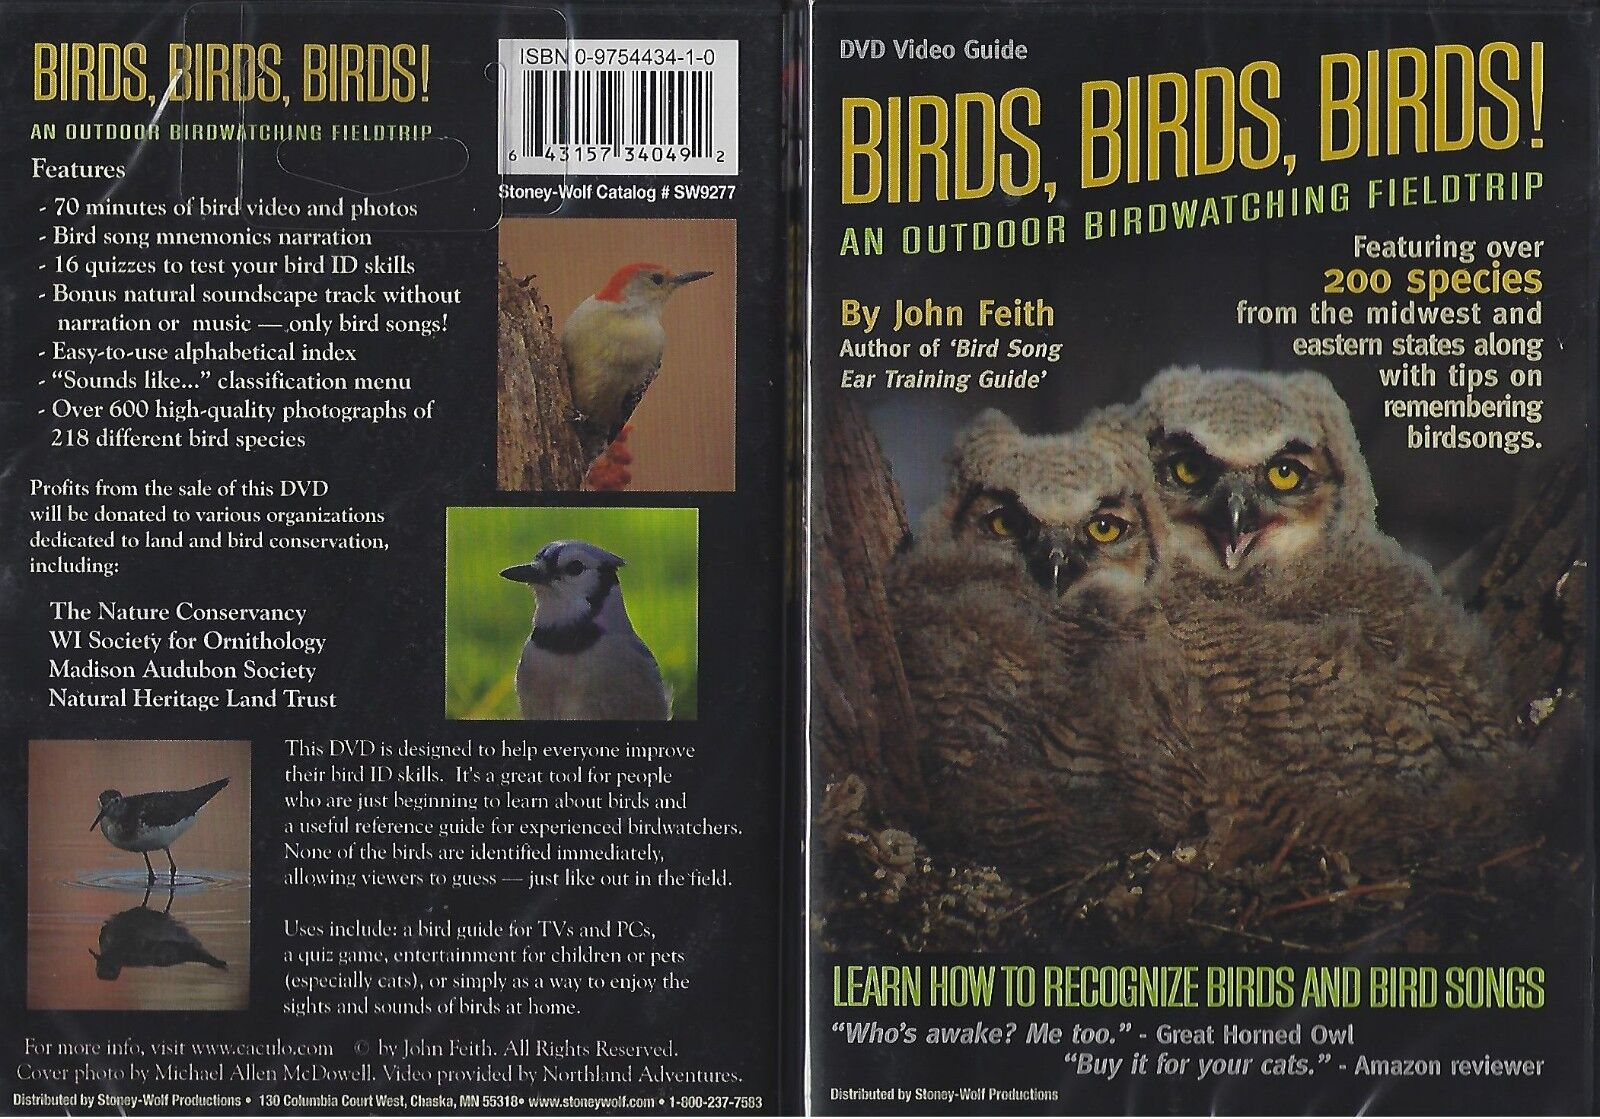 Birds, Birds, Birds- An Indoor Birdwatching Field Trip (DVD, 2005)